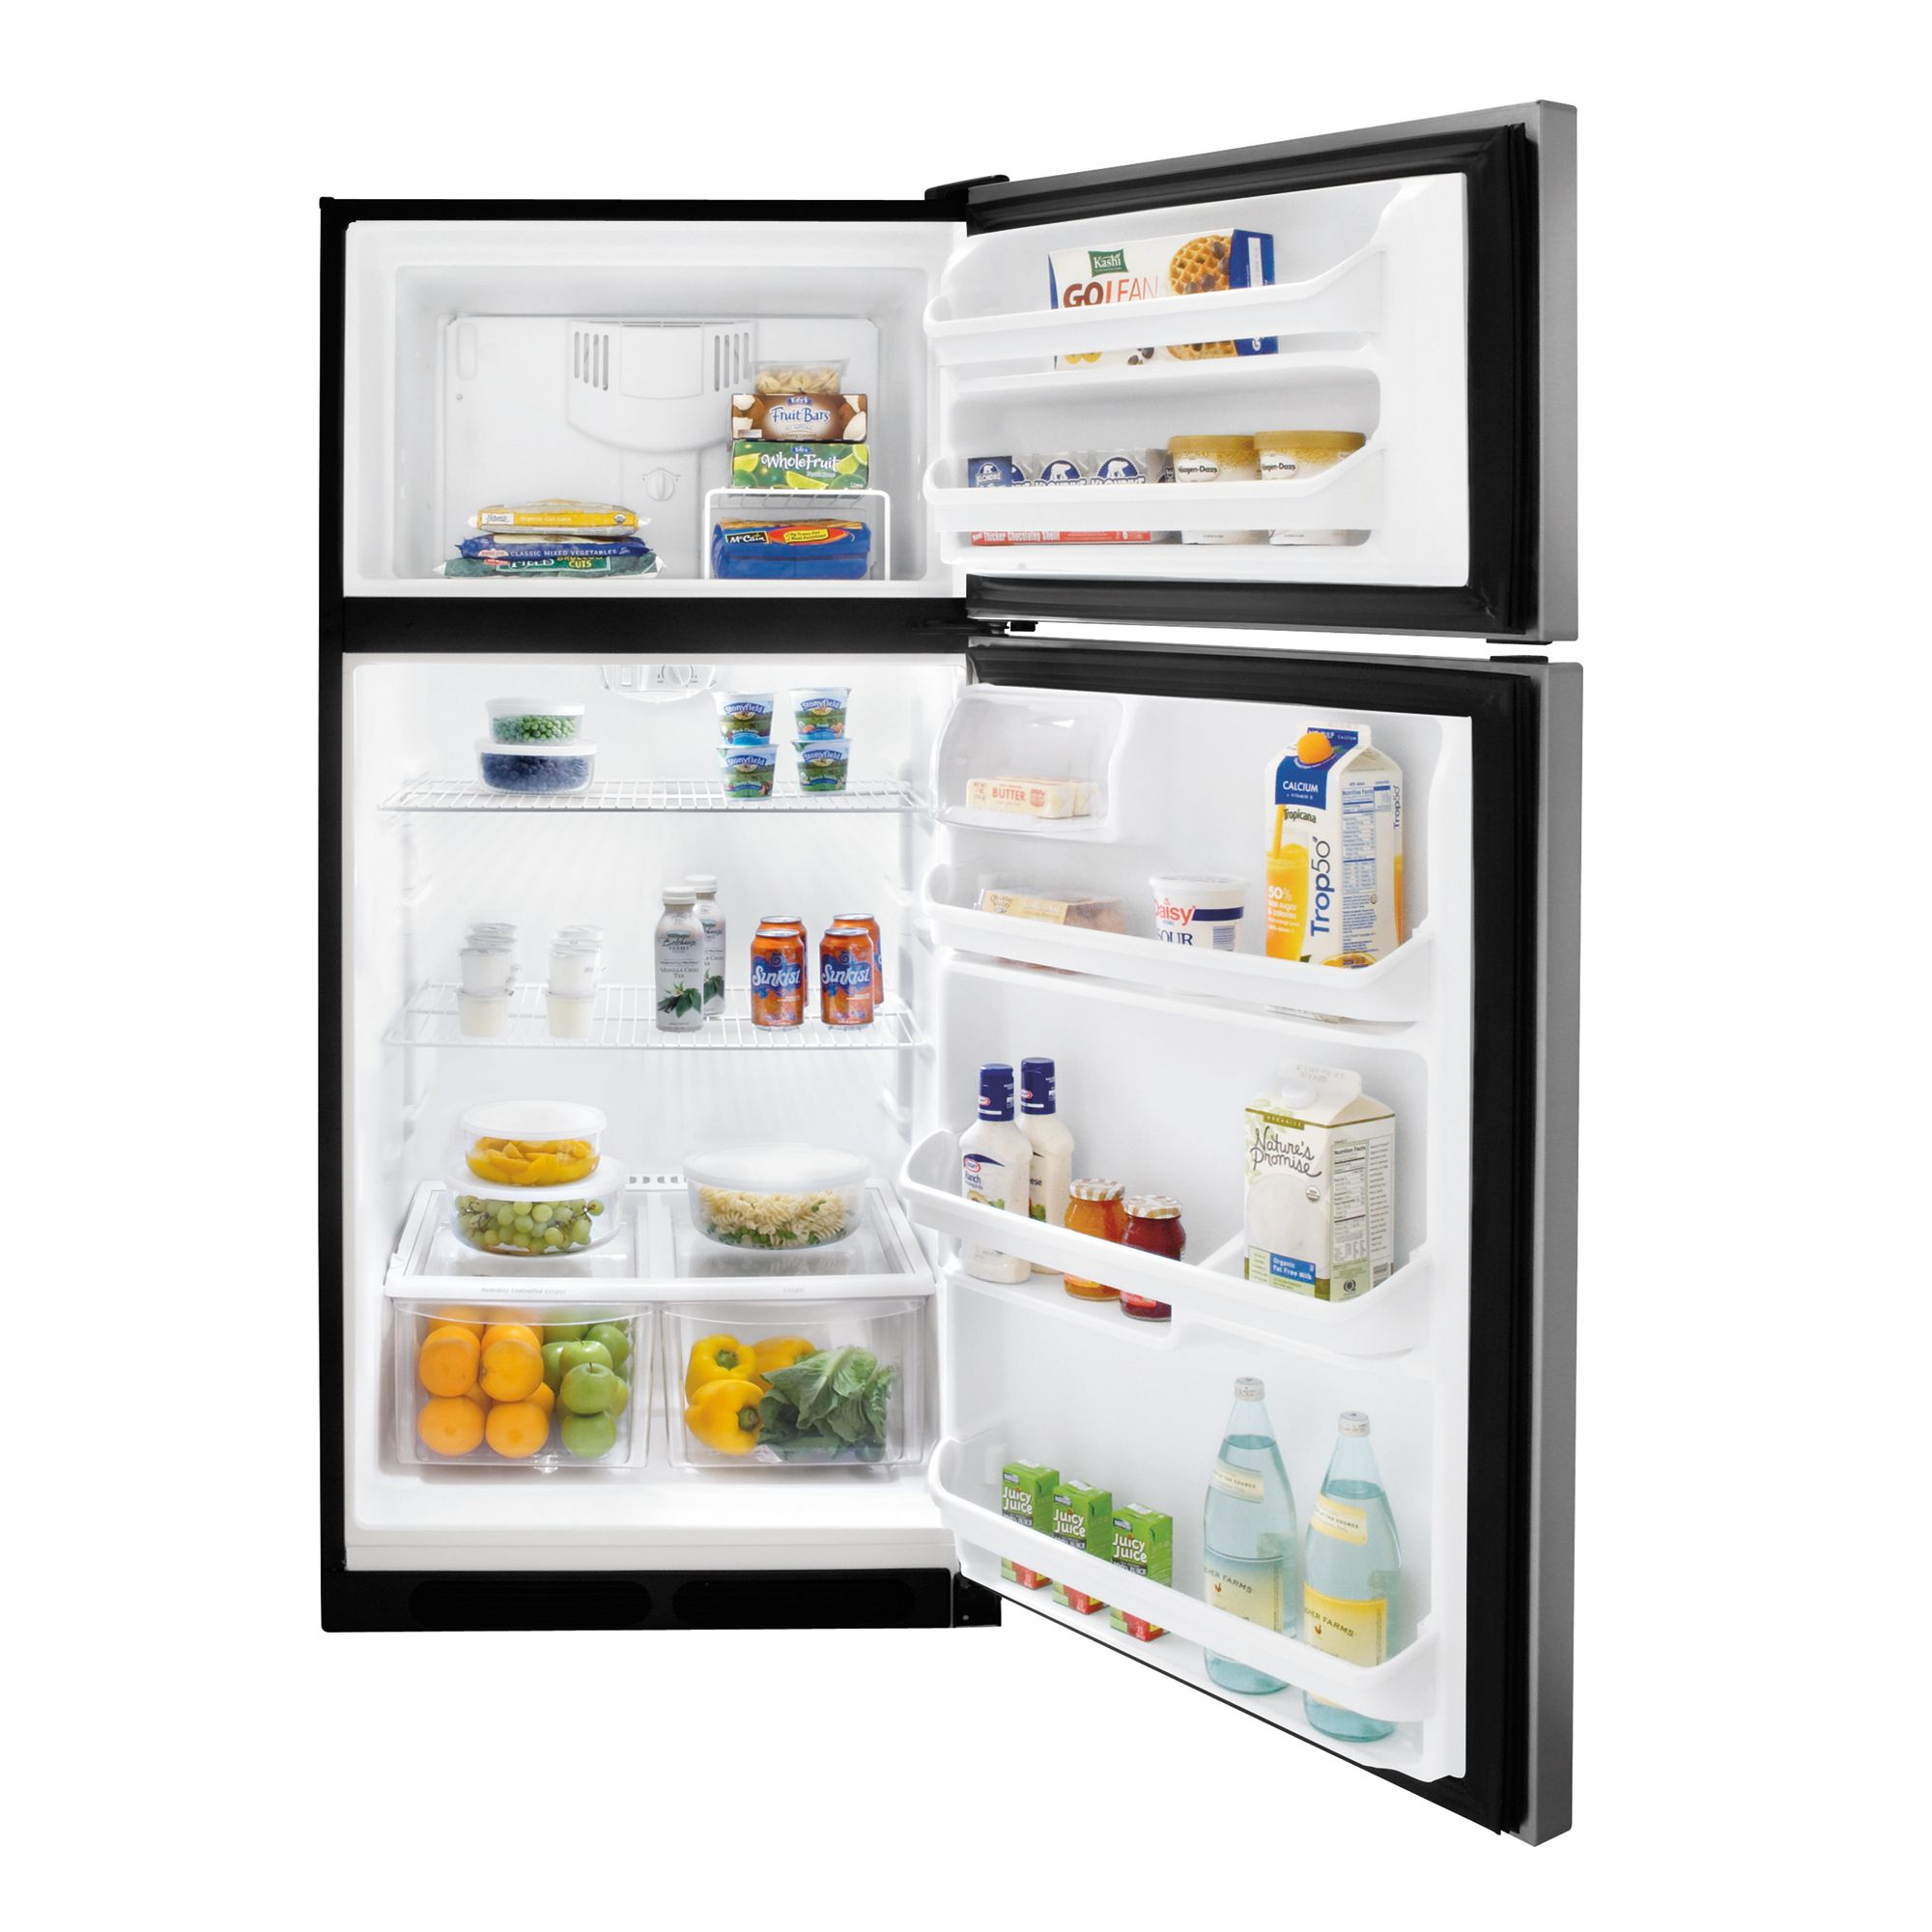 Frigidaire 18.2 cu. ft. Top-Freezer Refrigerator